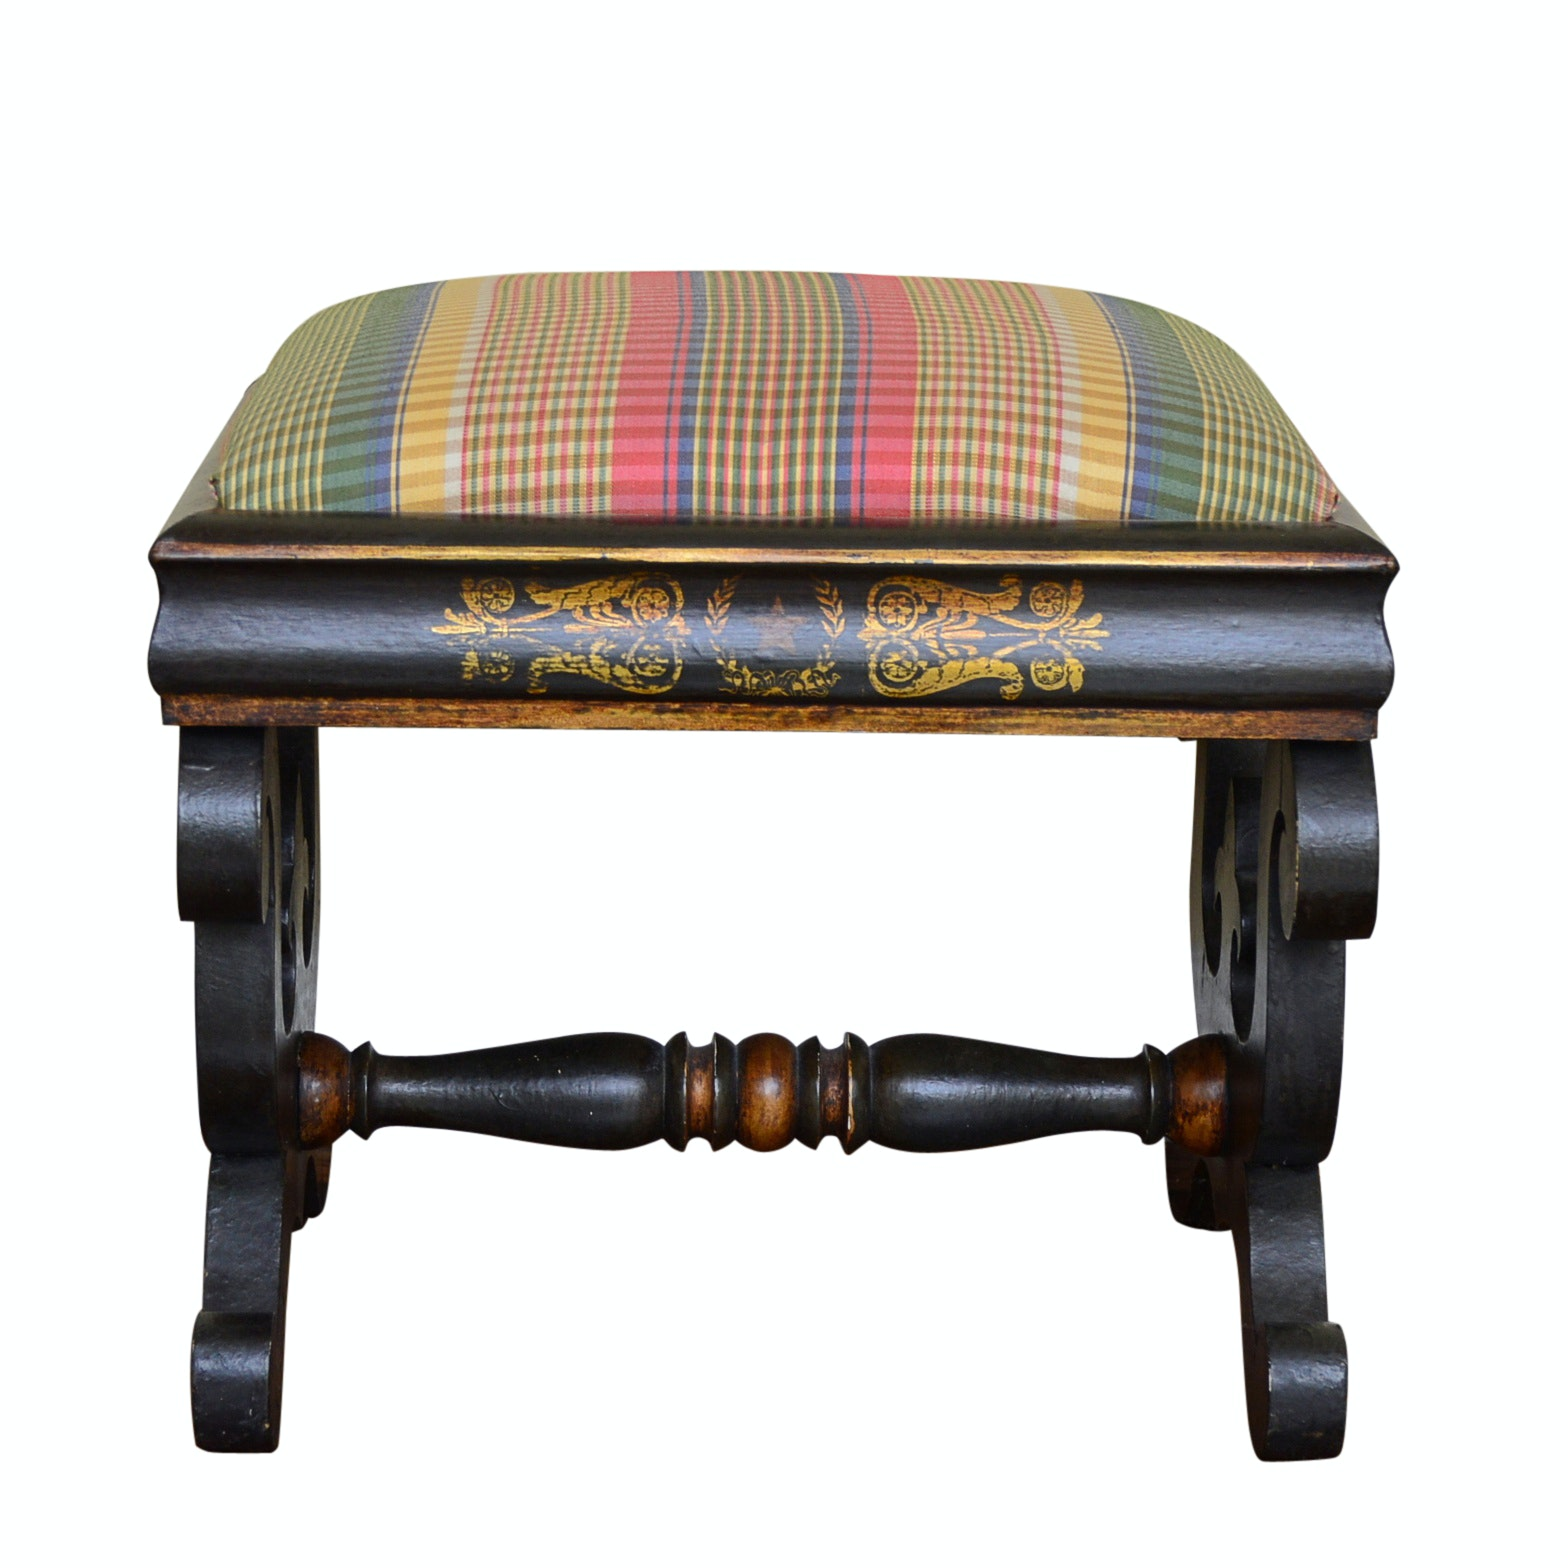 Neoclassic Style Bench Hand Painted by Jan Wolf